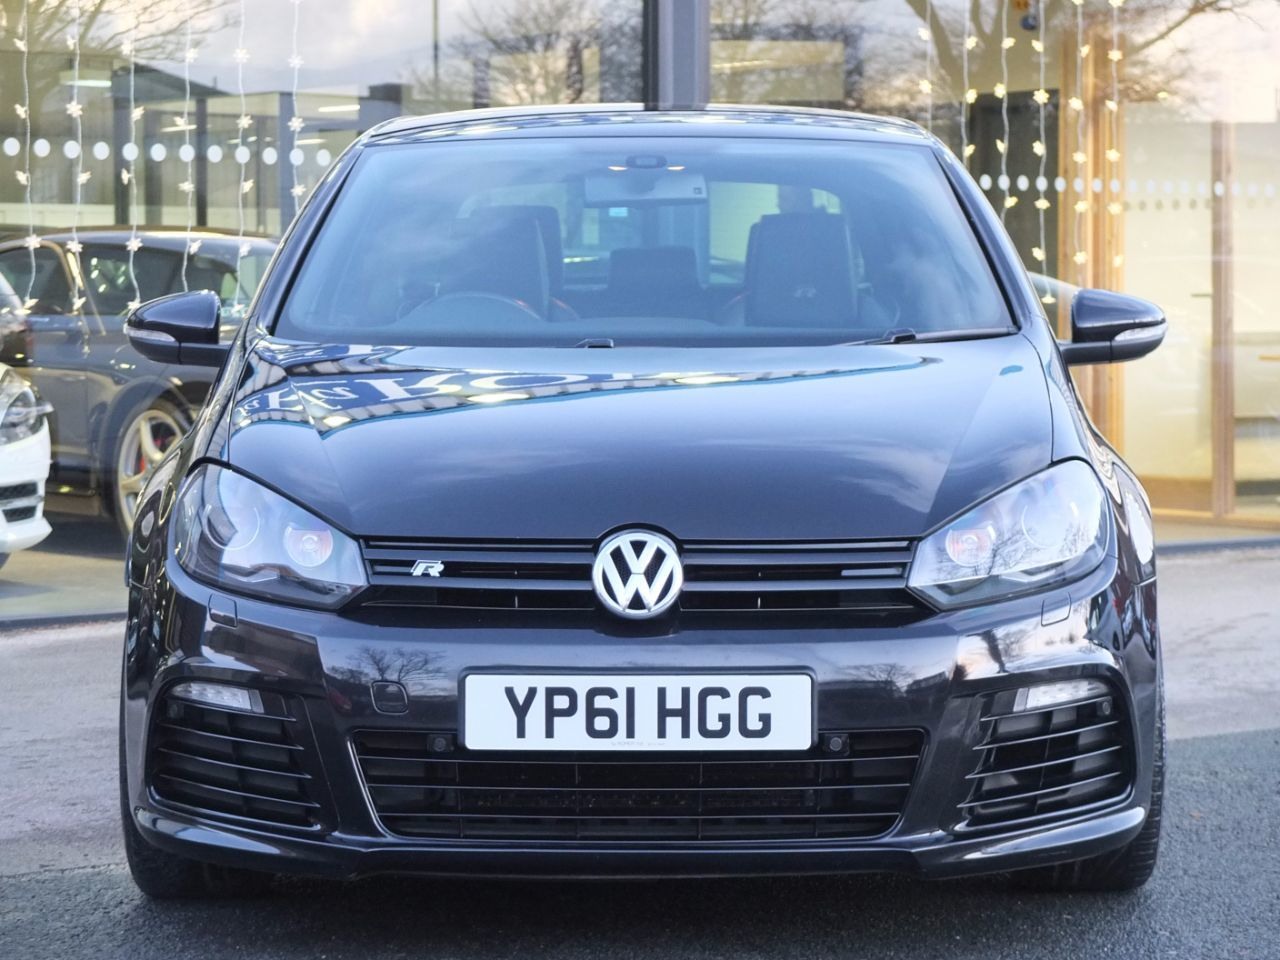 Volkswagen Golf 2.0 TSI R 4MOTION 3 Door Hatchback Petrol Deep Black Metallic